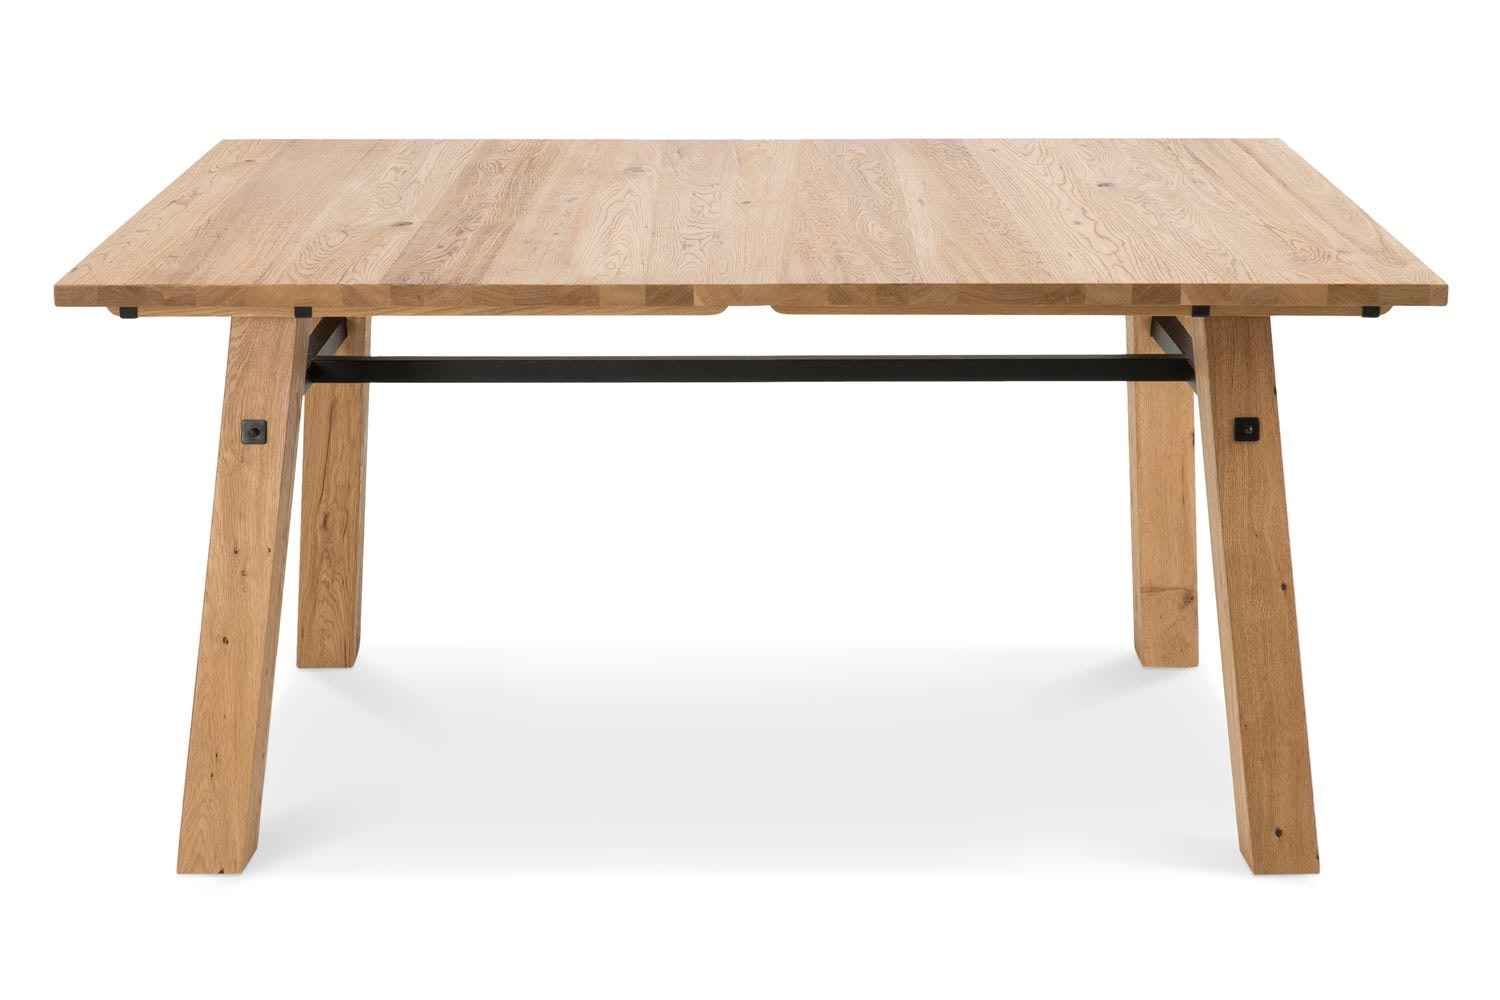 Stockholm Dining Table | 160cm